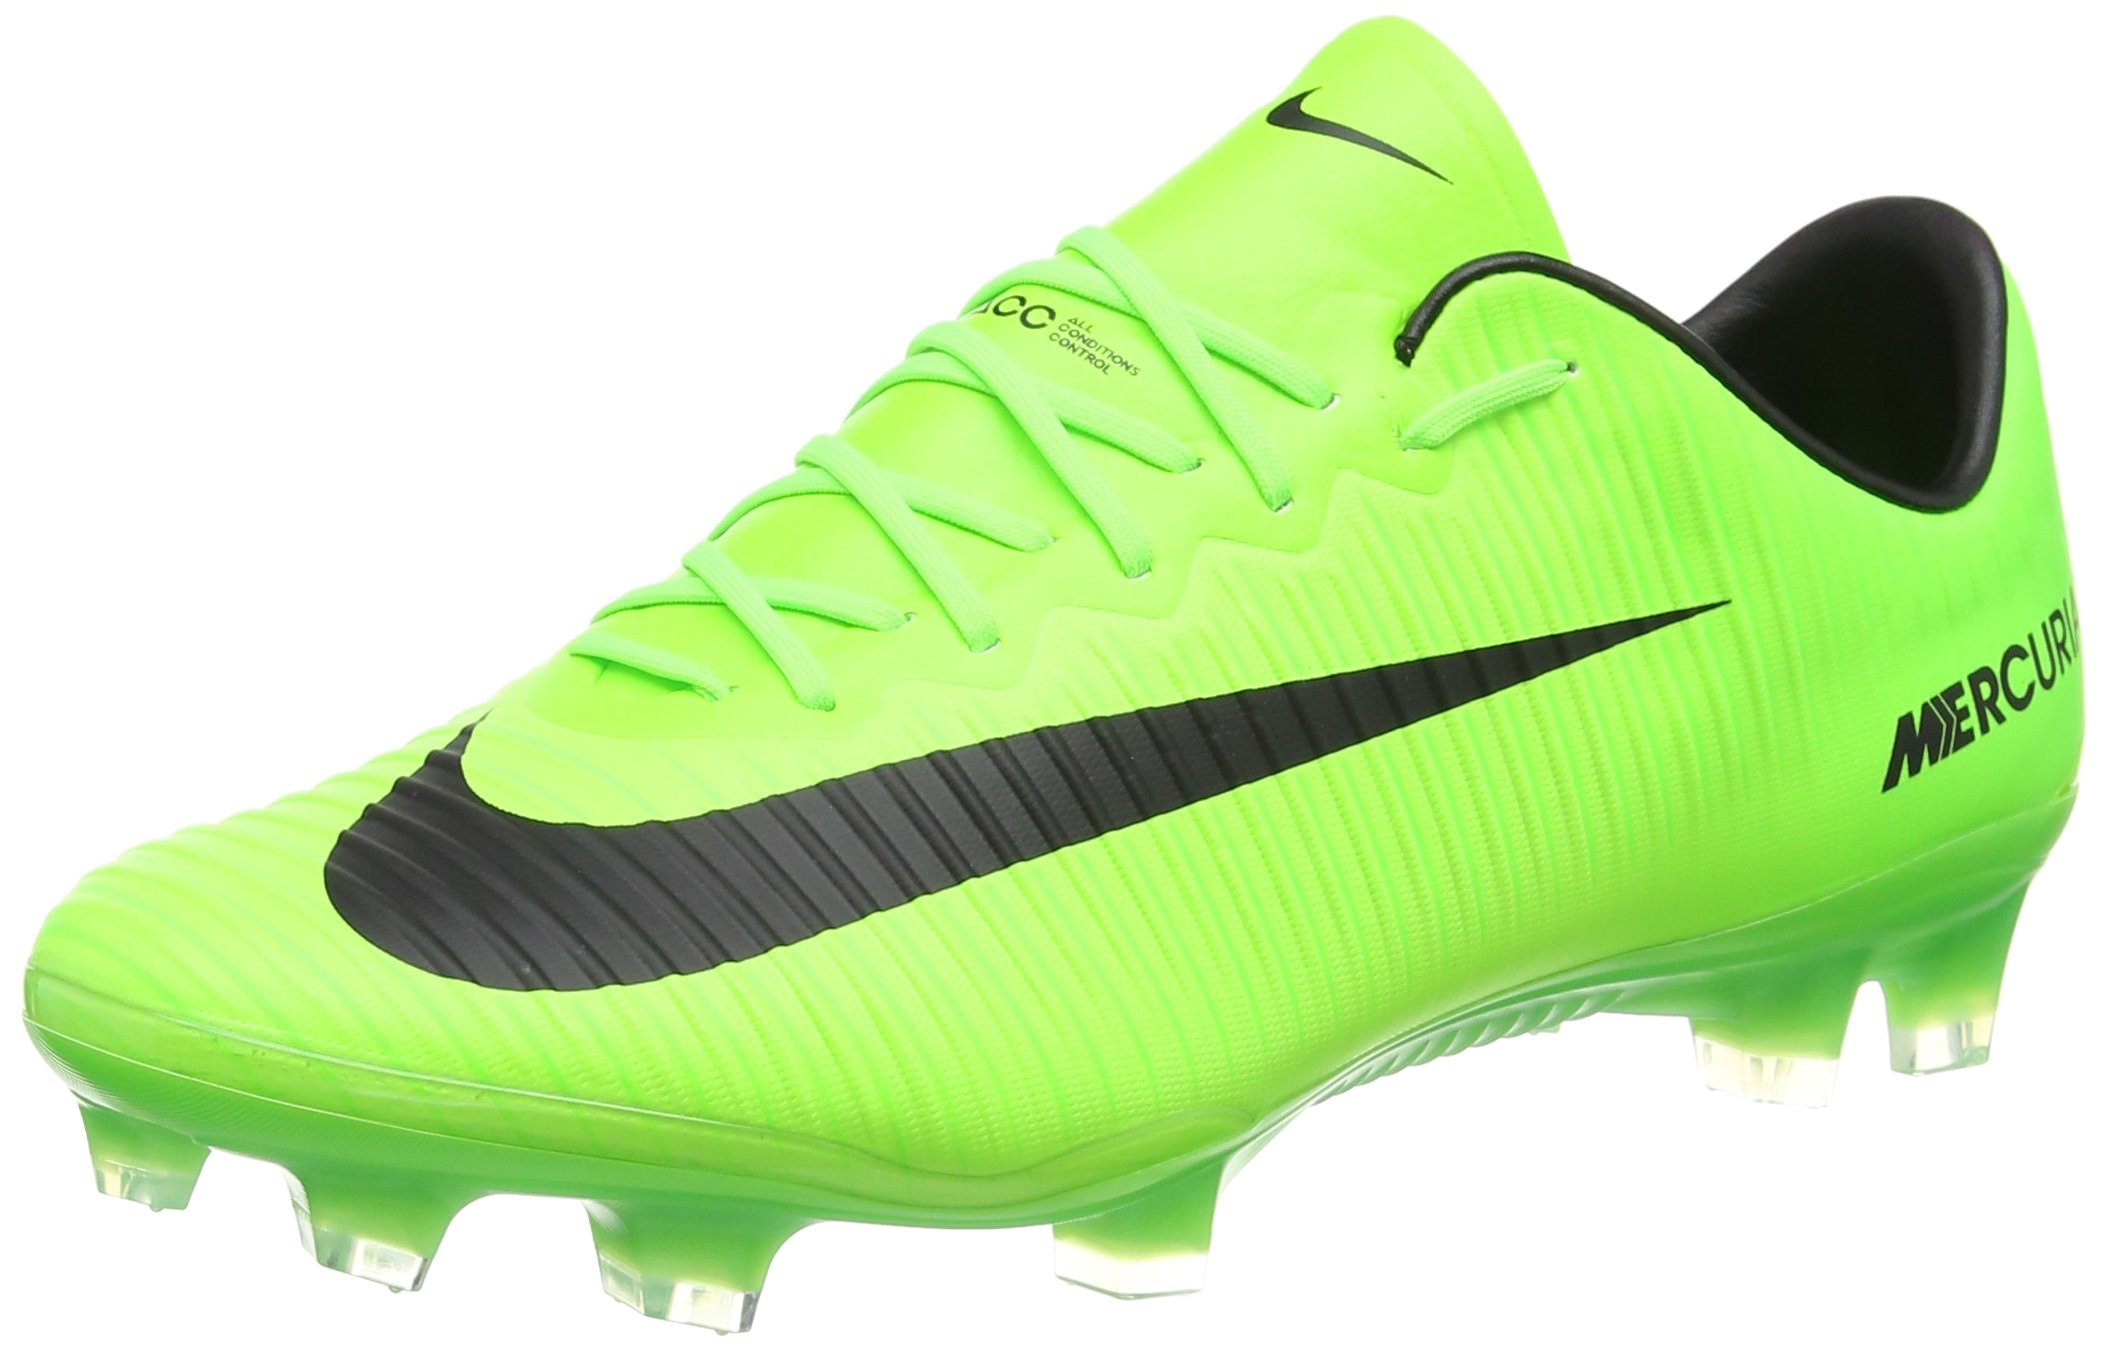 new concept 05352 f5829 Nike Men's Mercurial Vapor XI FG Soccer Cleat (Sz. 11) Electric Green